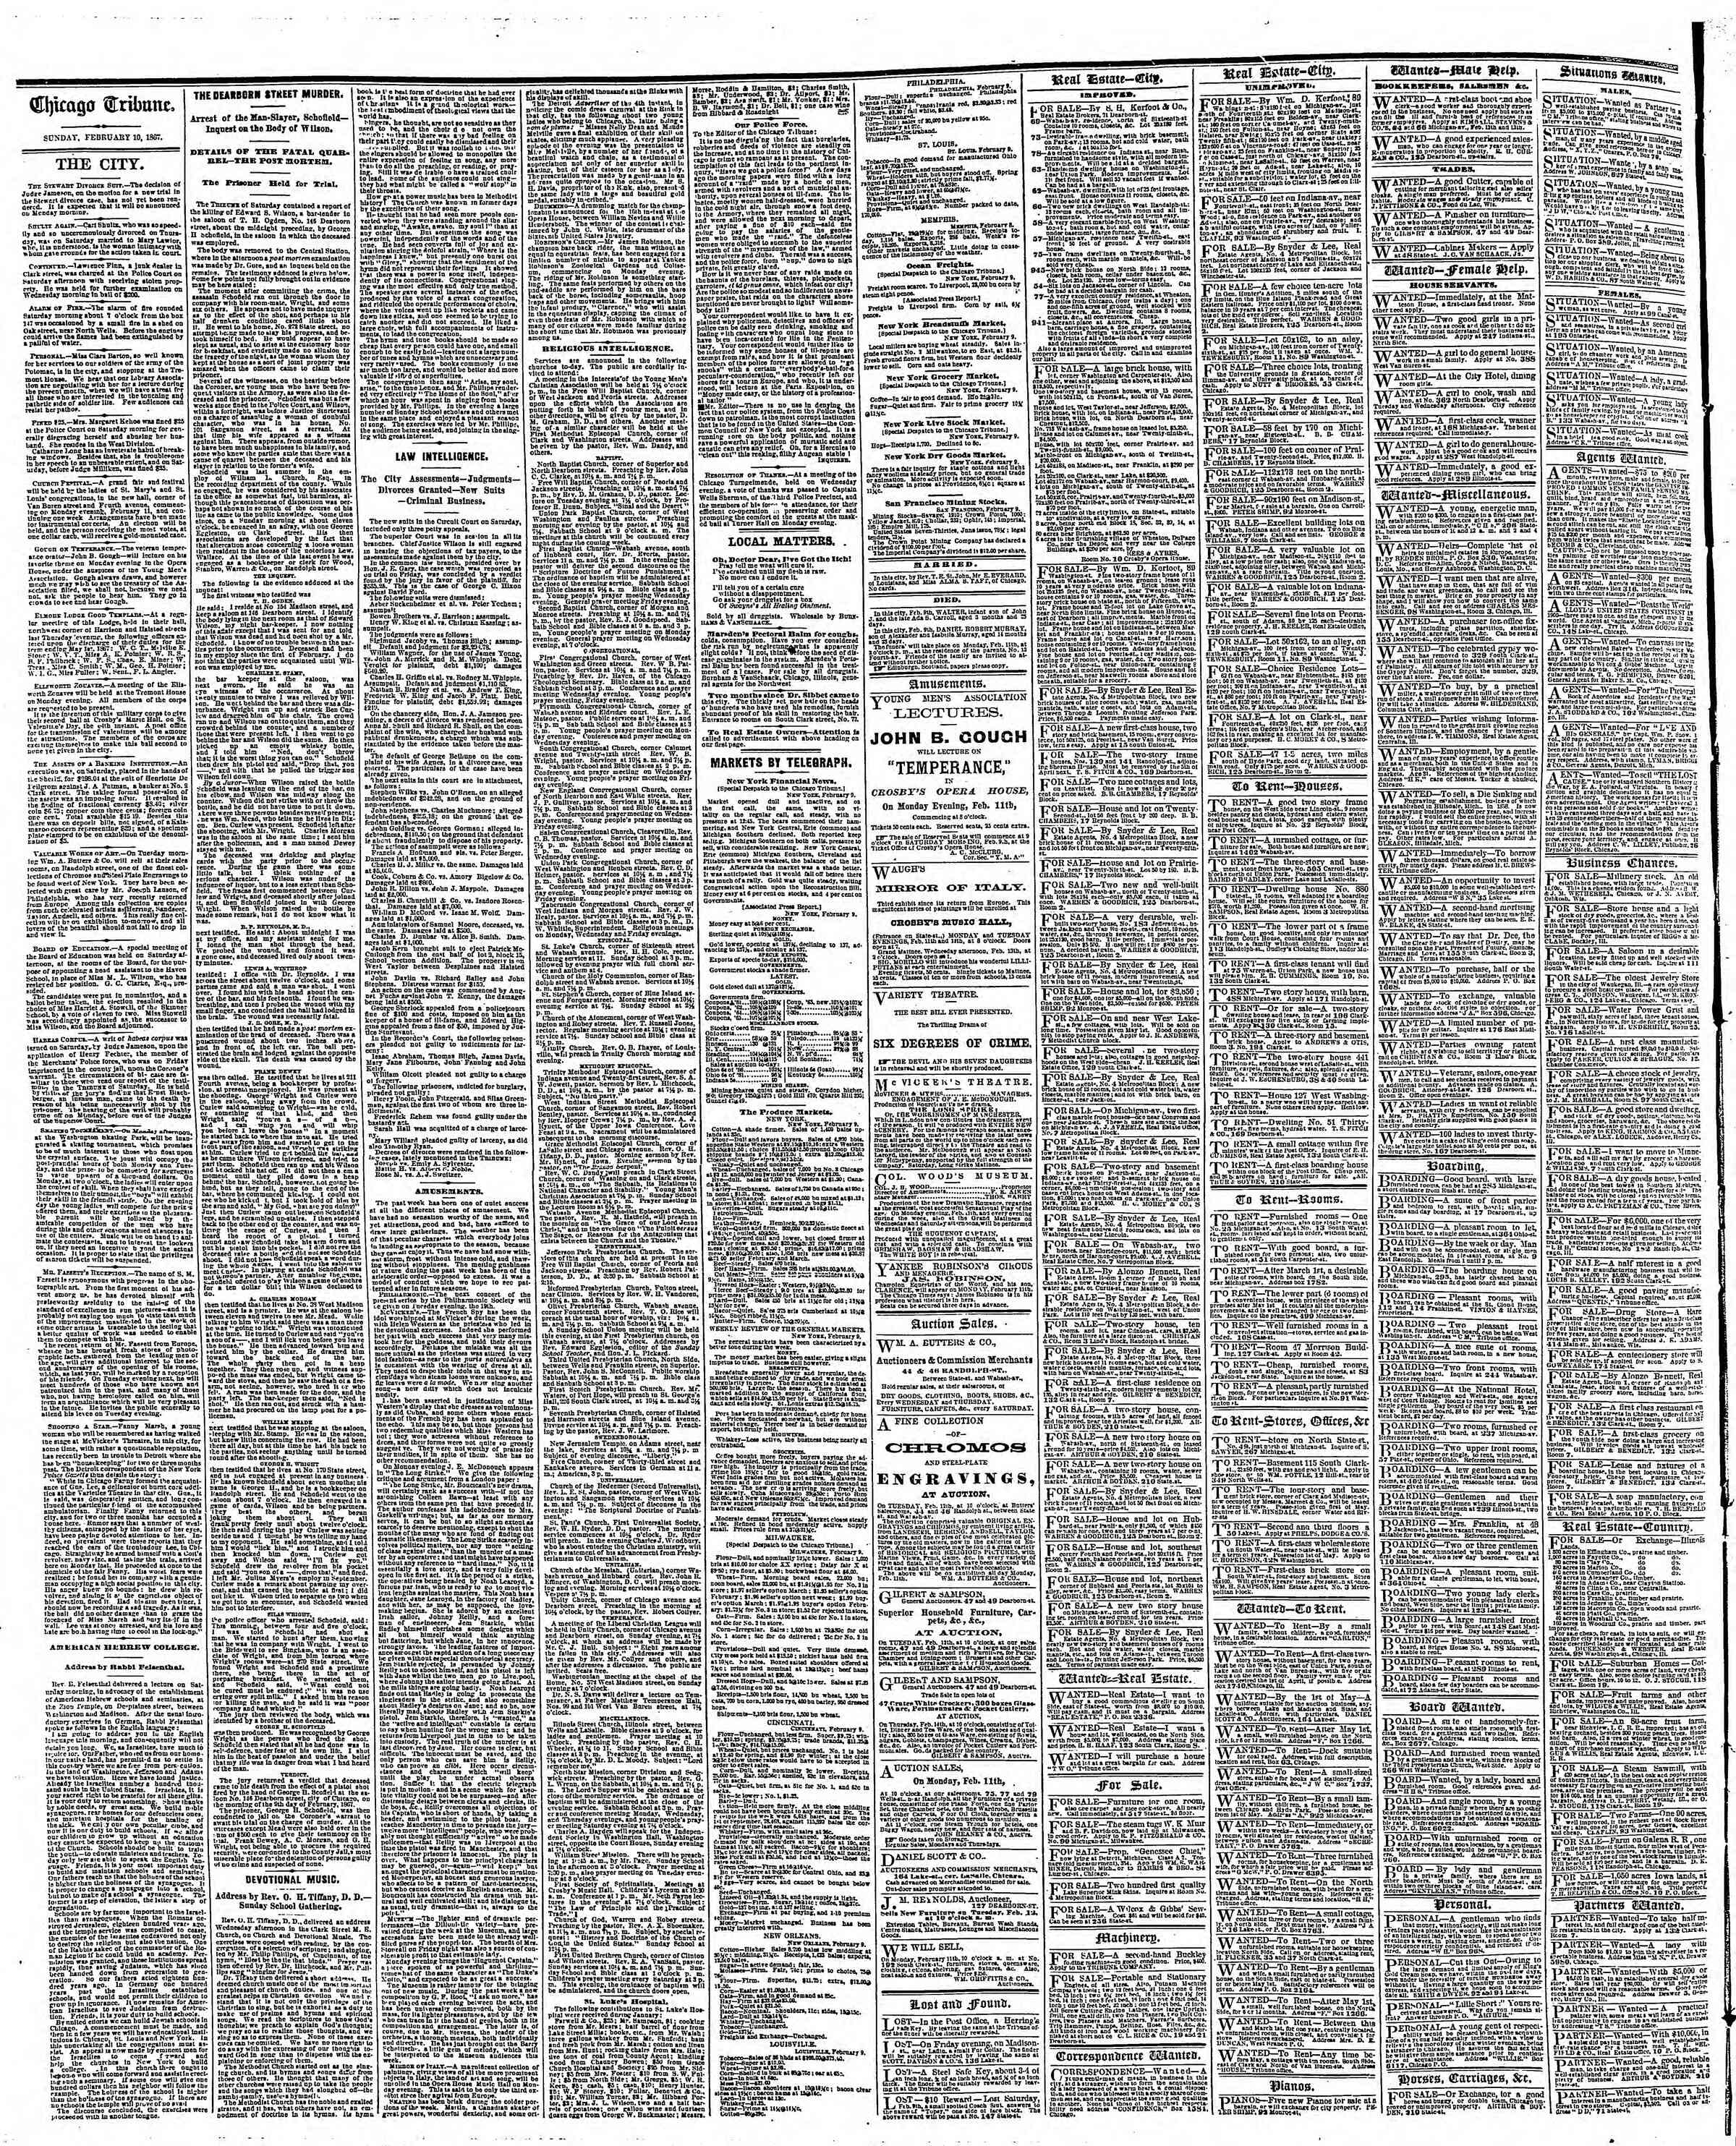 Newspaper of The Chicago Tribune dated 10 Şubat 1867 Page 4